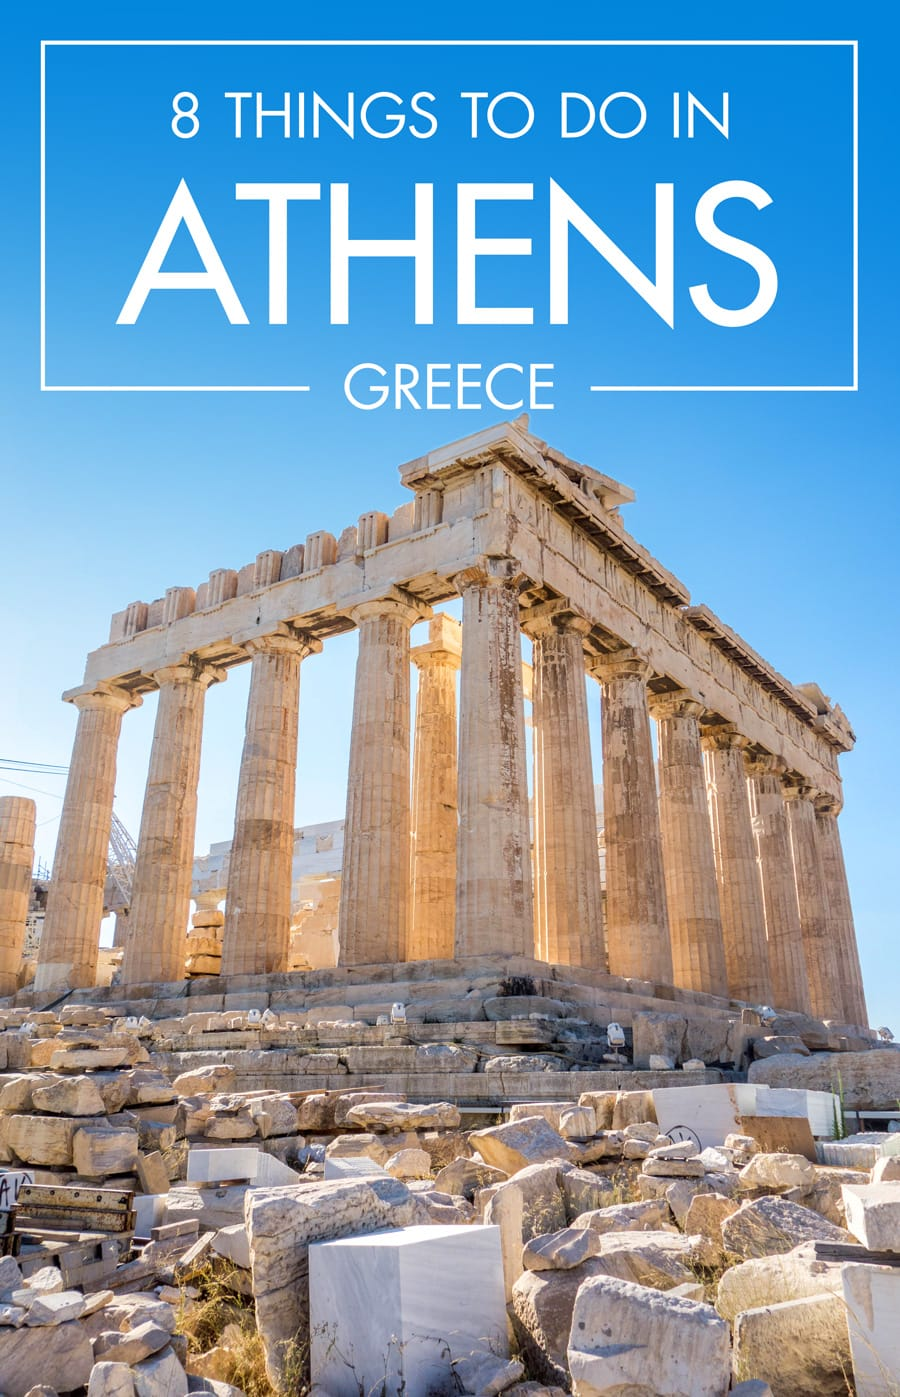 Best Things to Do in Athens, Greece